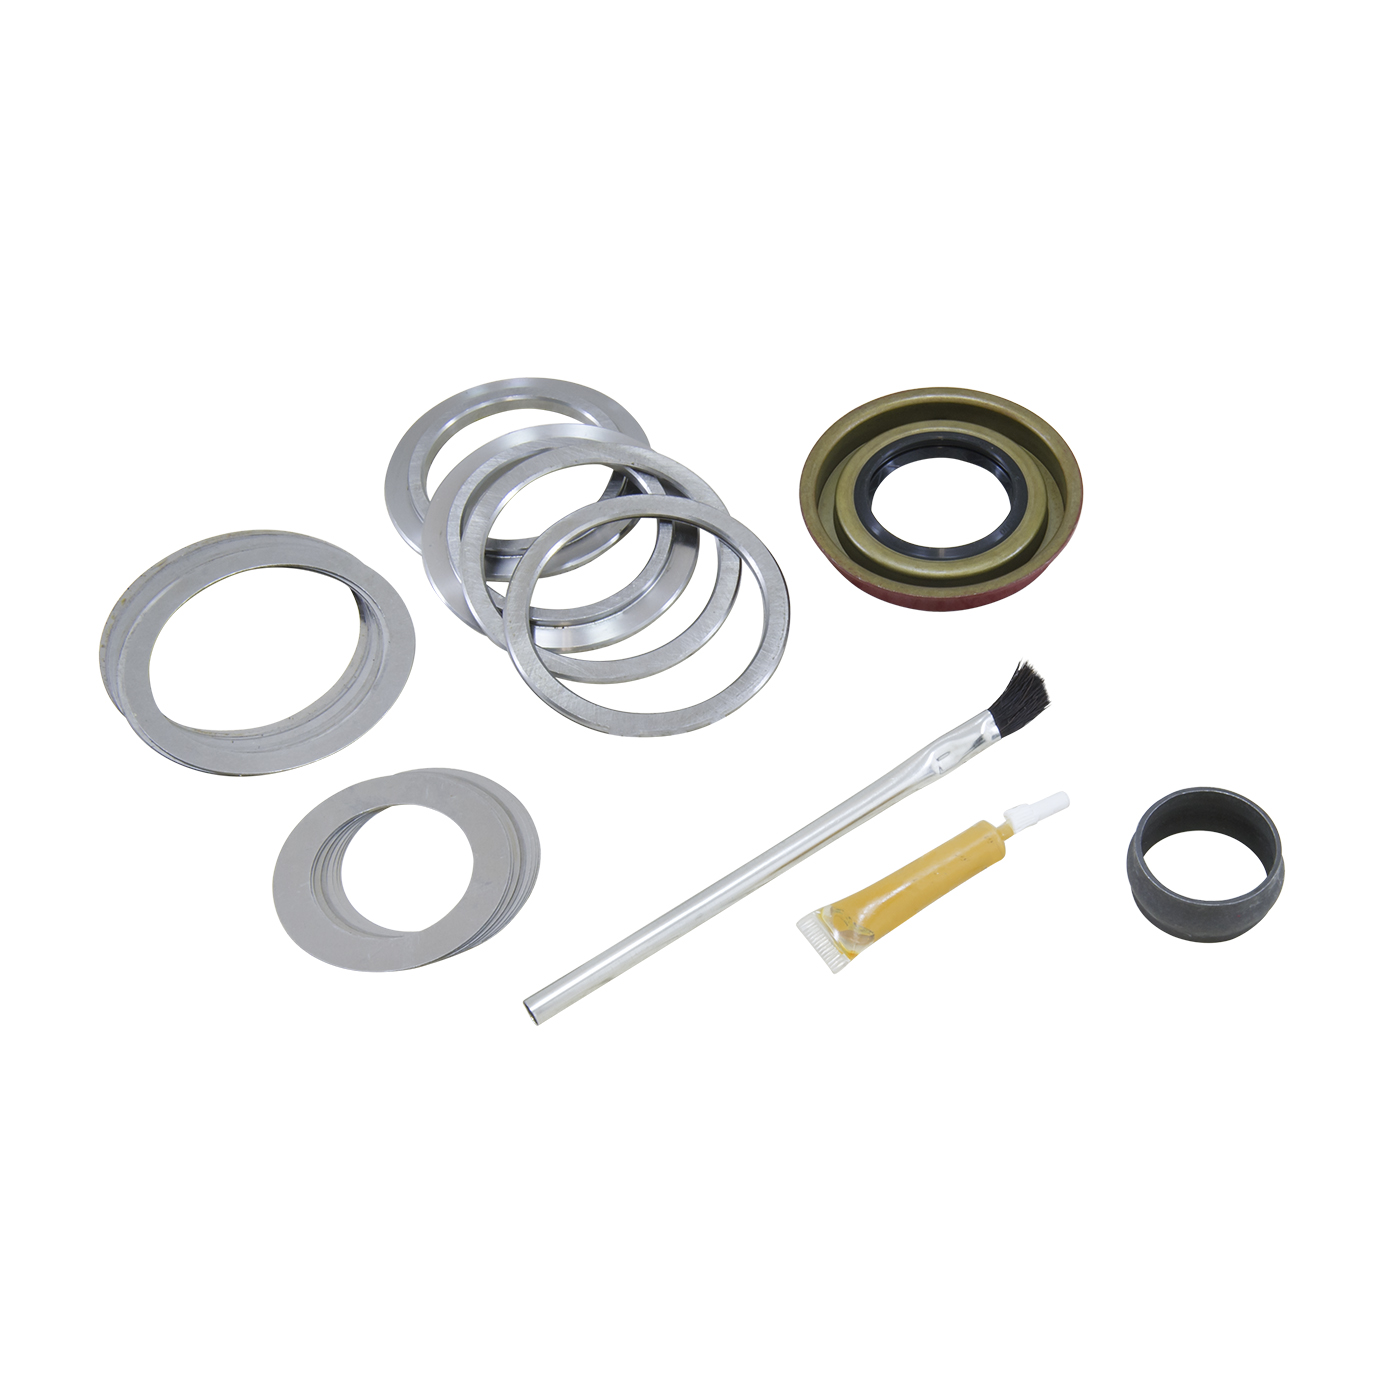 MK GM7.6IRS - Yukon Minor install kit for GM 7.6IRS rear differential